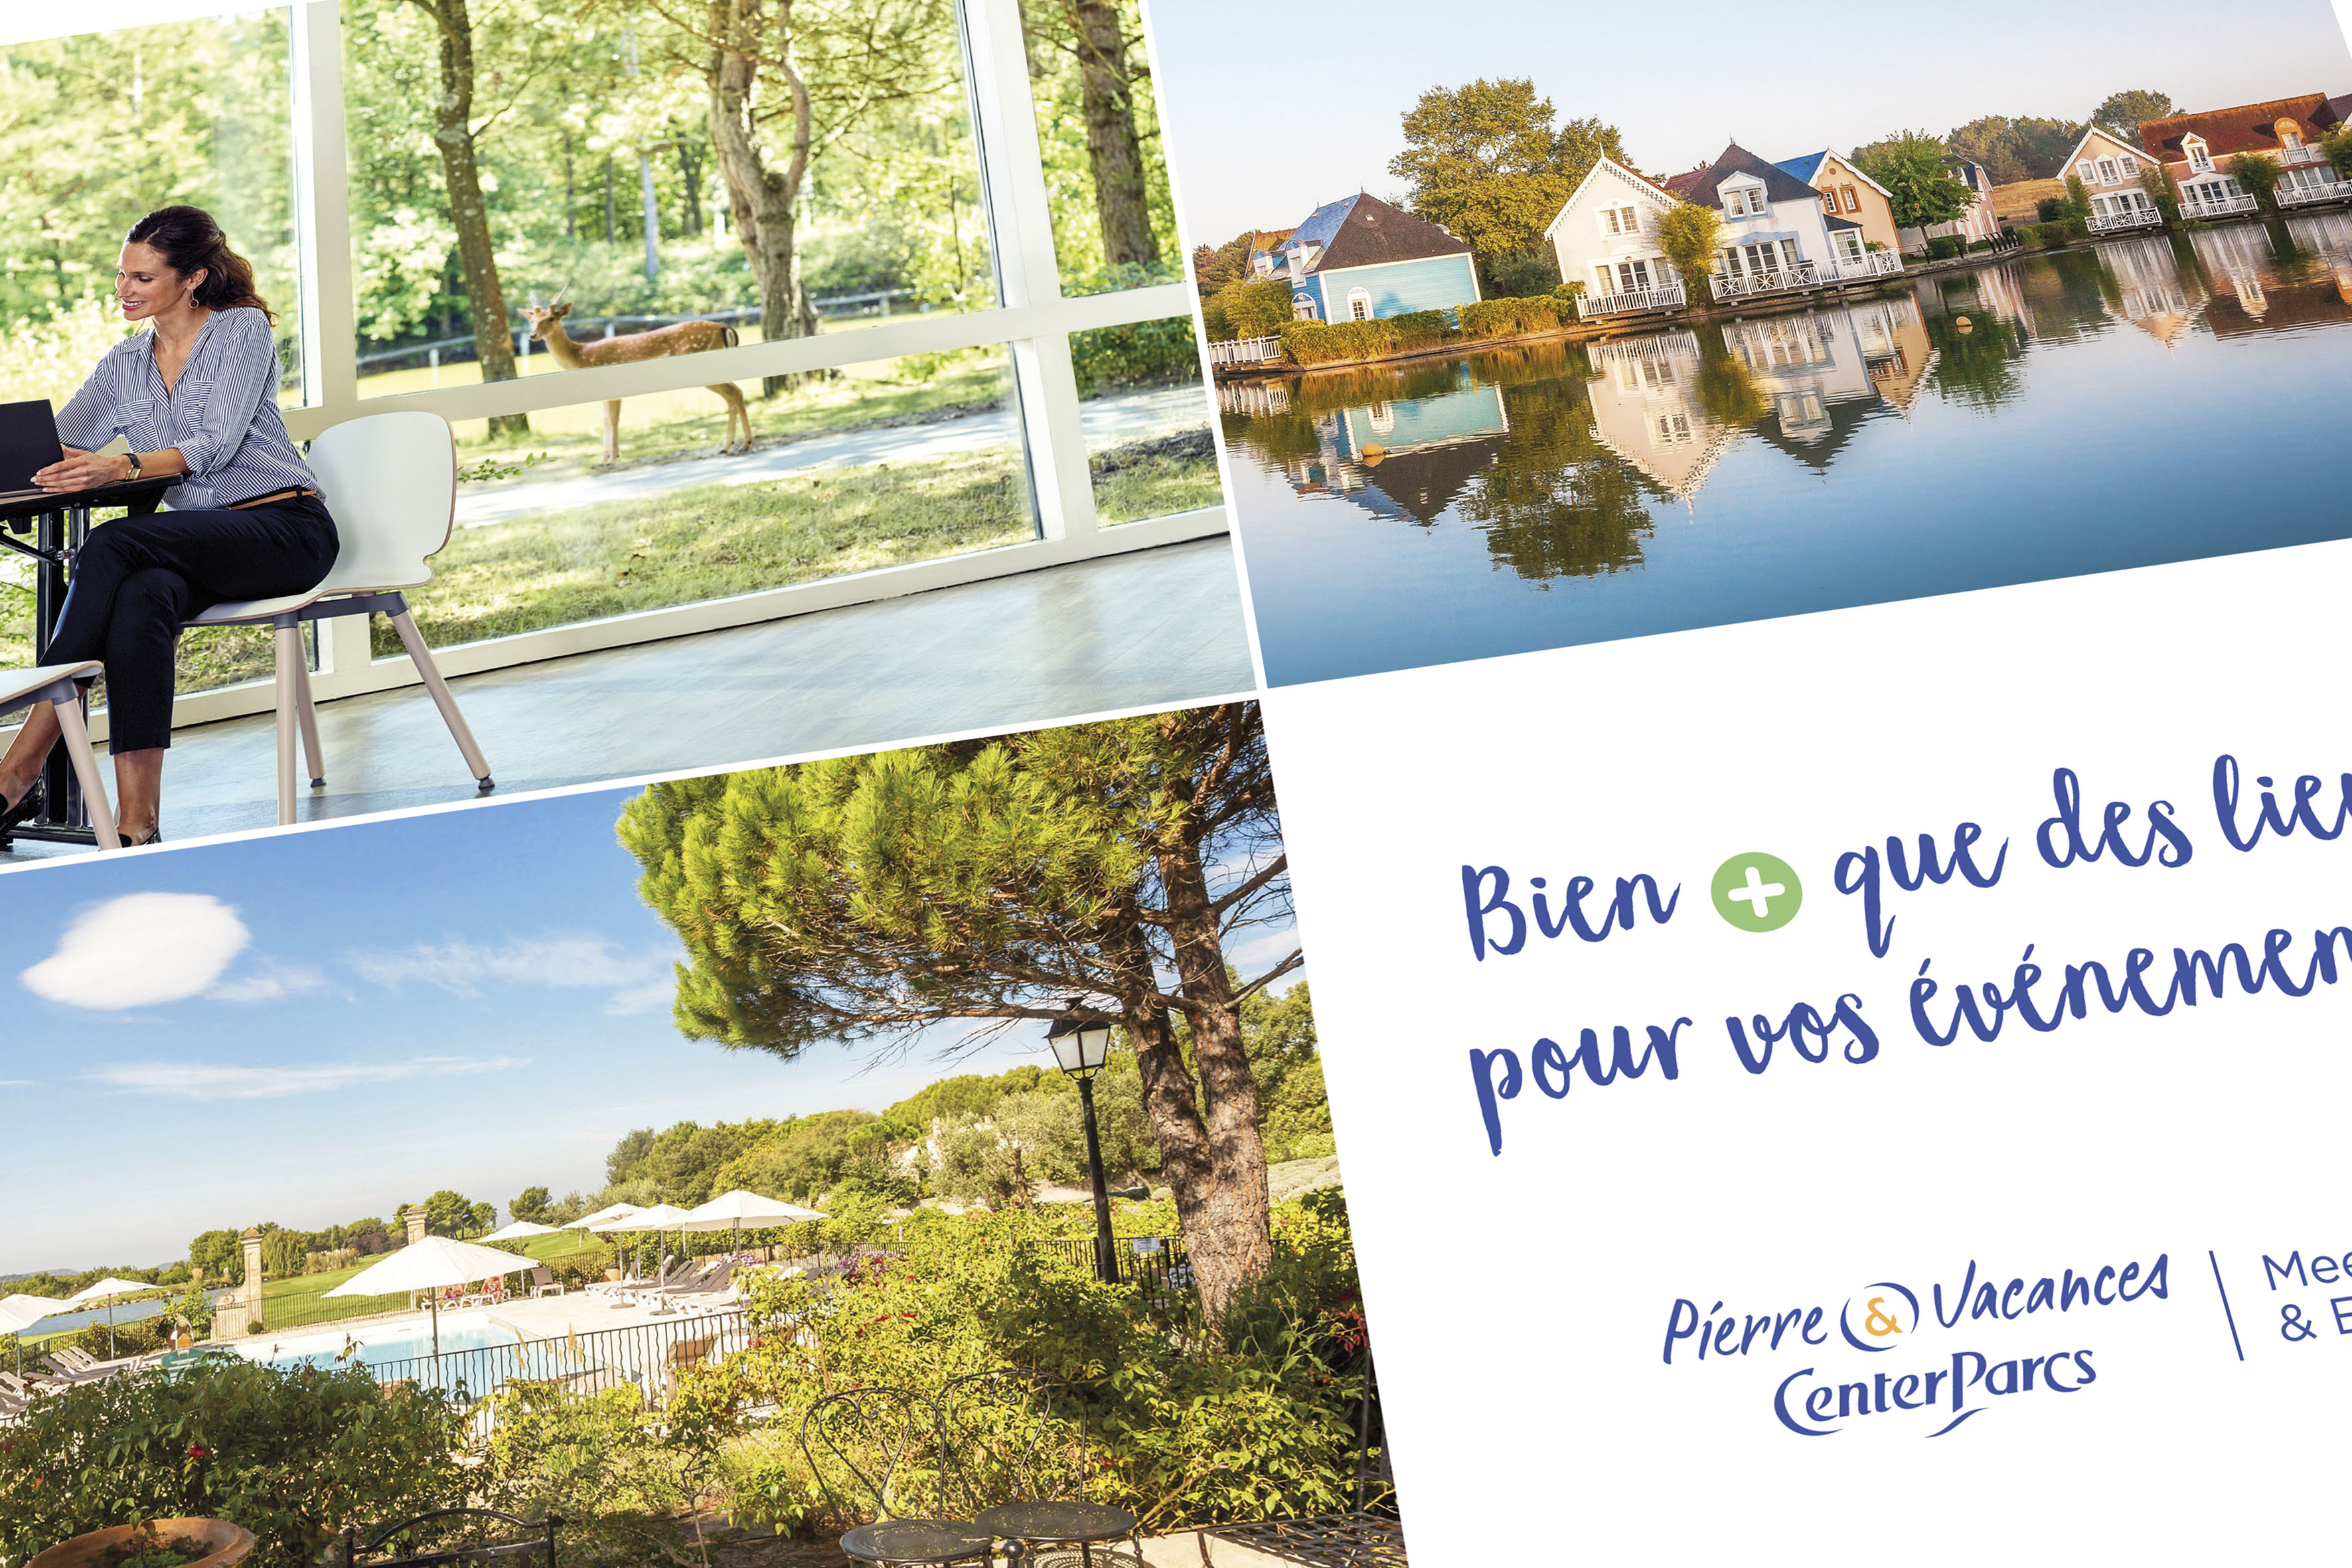 BROCHURE MICE PIERRE & VACANCES CENTER PARCS